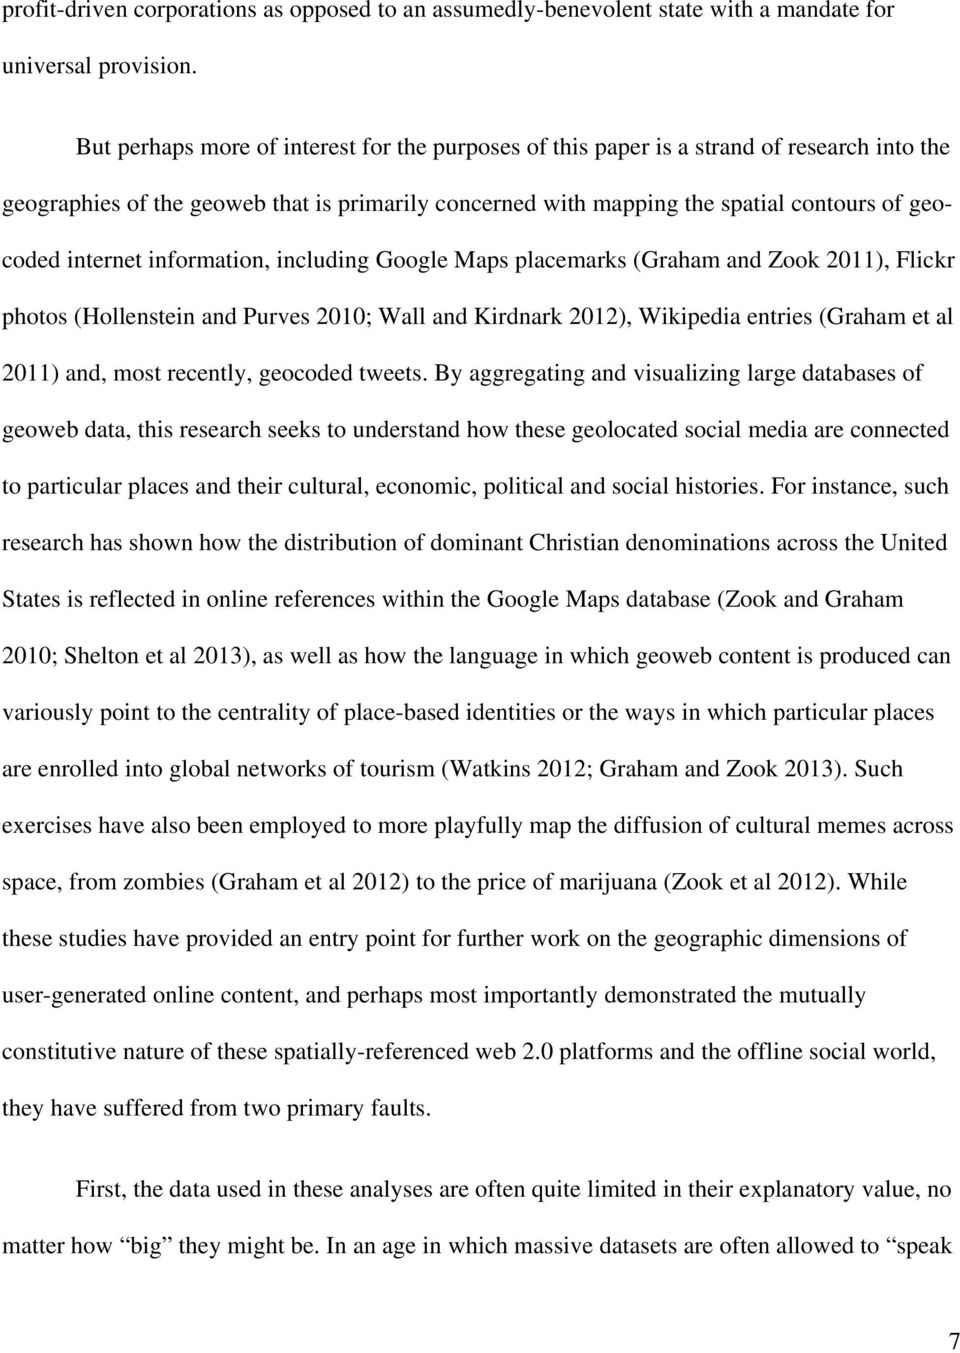 internet information, including Google Maps placemarks (Graham and Zook 2011), Flickr photos (Hollenstein and Purves 2010; Wall and Kirdnark 2012), Wikipedia entries (Graham et al 2011) and, most